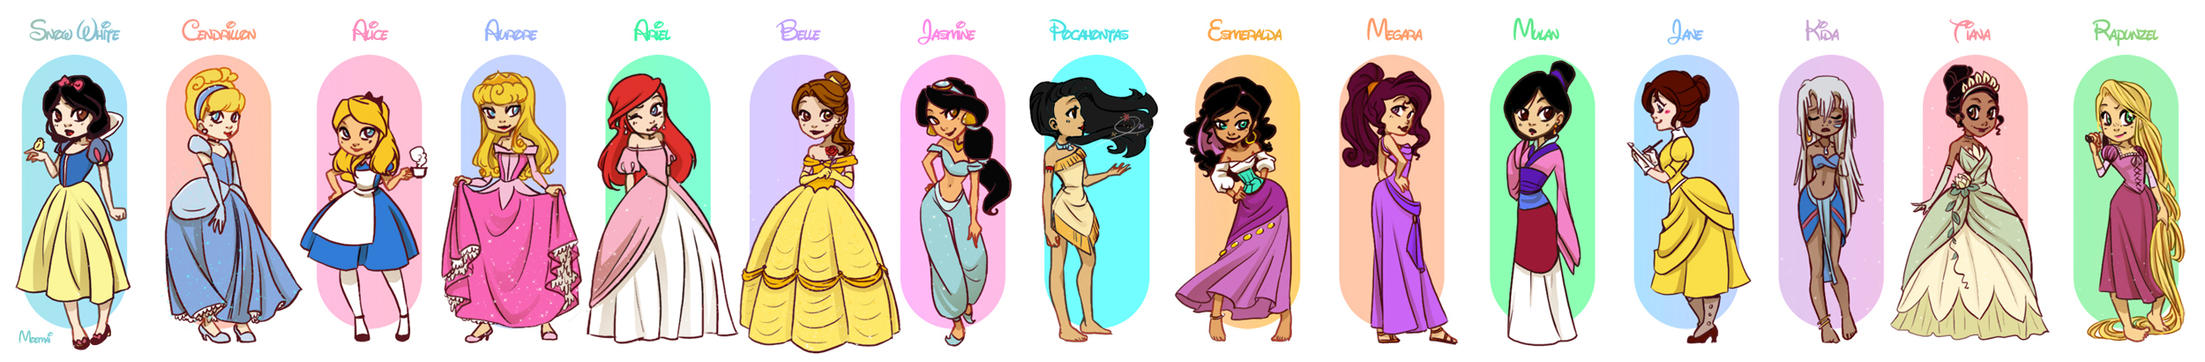 Disney Girls by Moemai